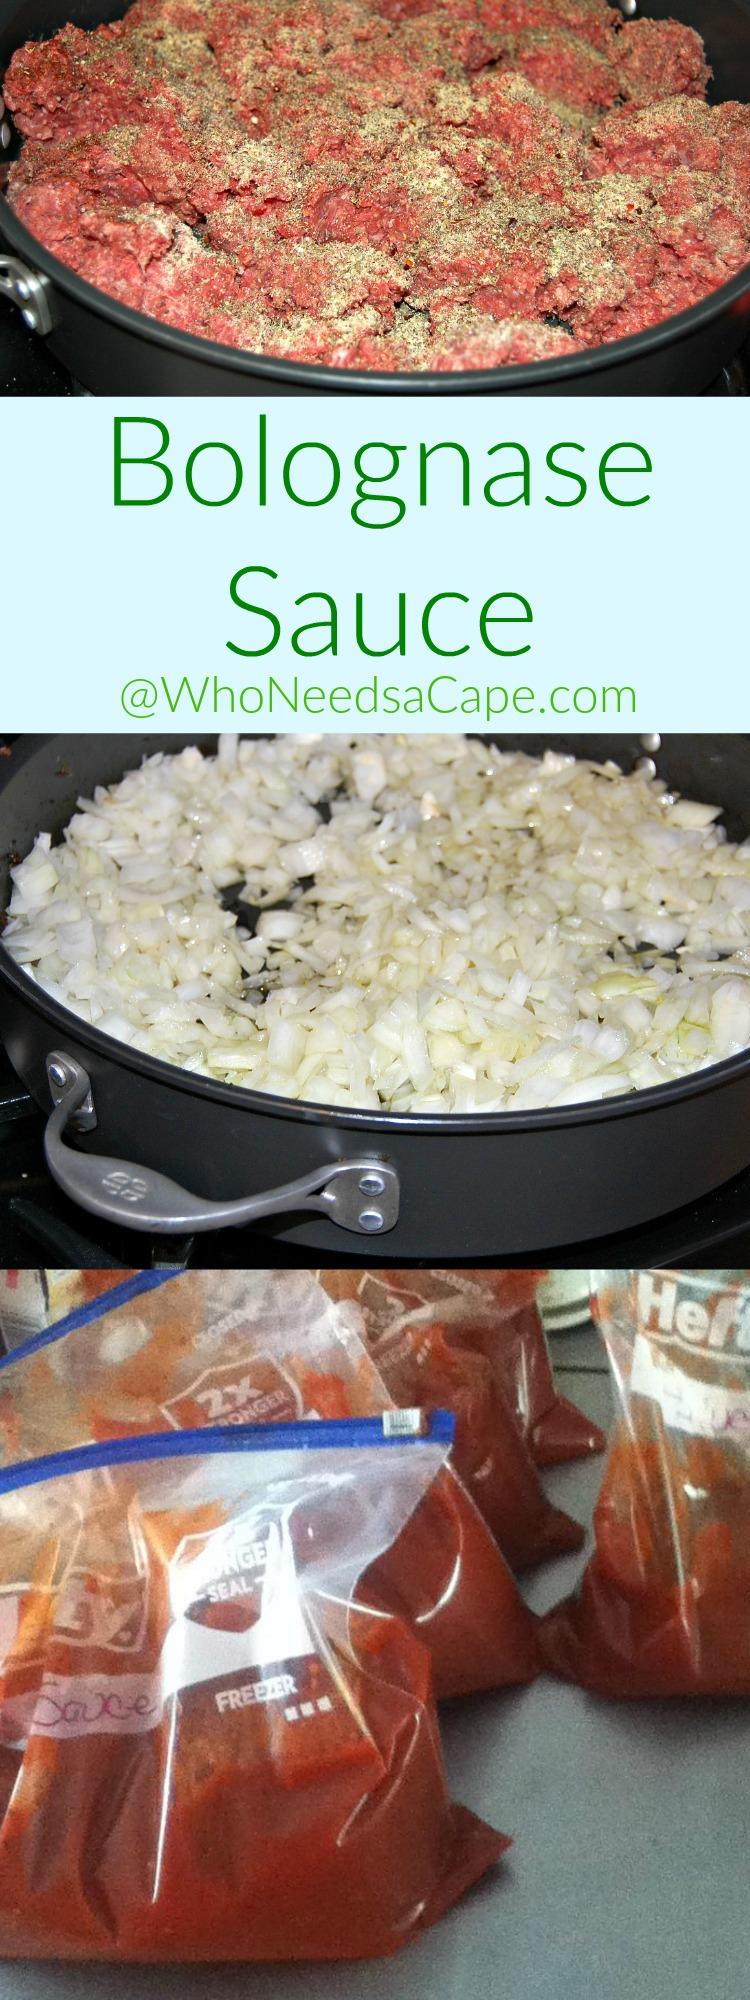 Bolognase Sauce is actually simple to make - this recipe is so authentic and amazing tasting. Freezes beautifully and you'll LOVE IT!